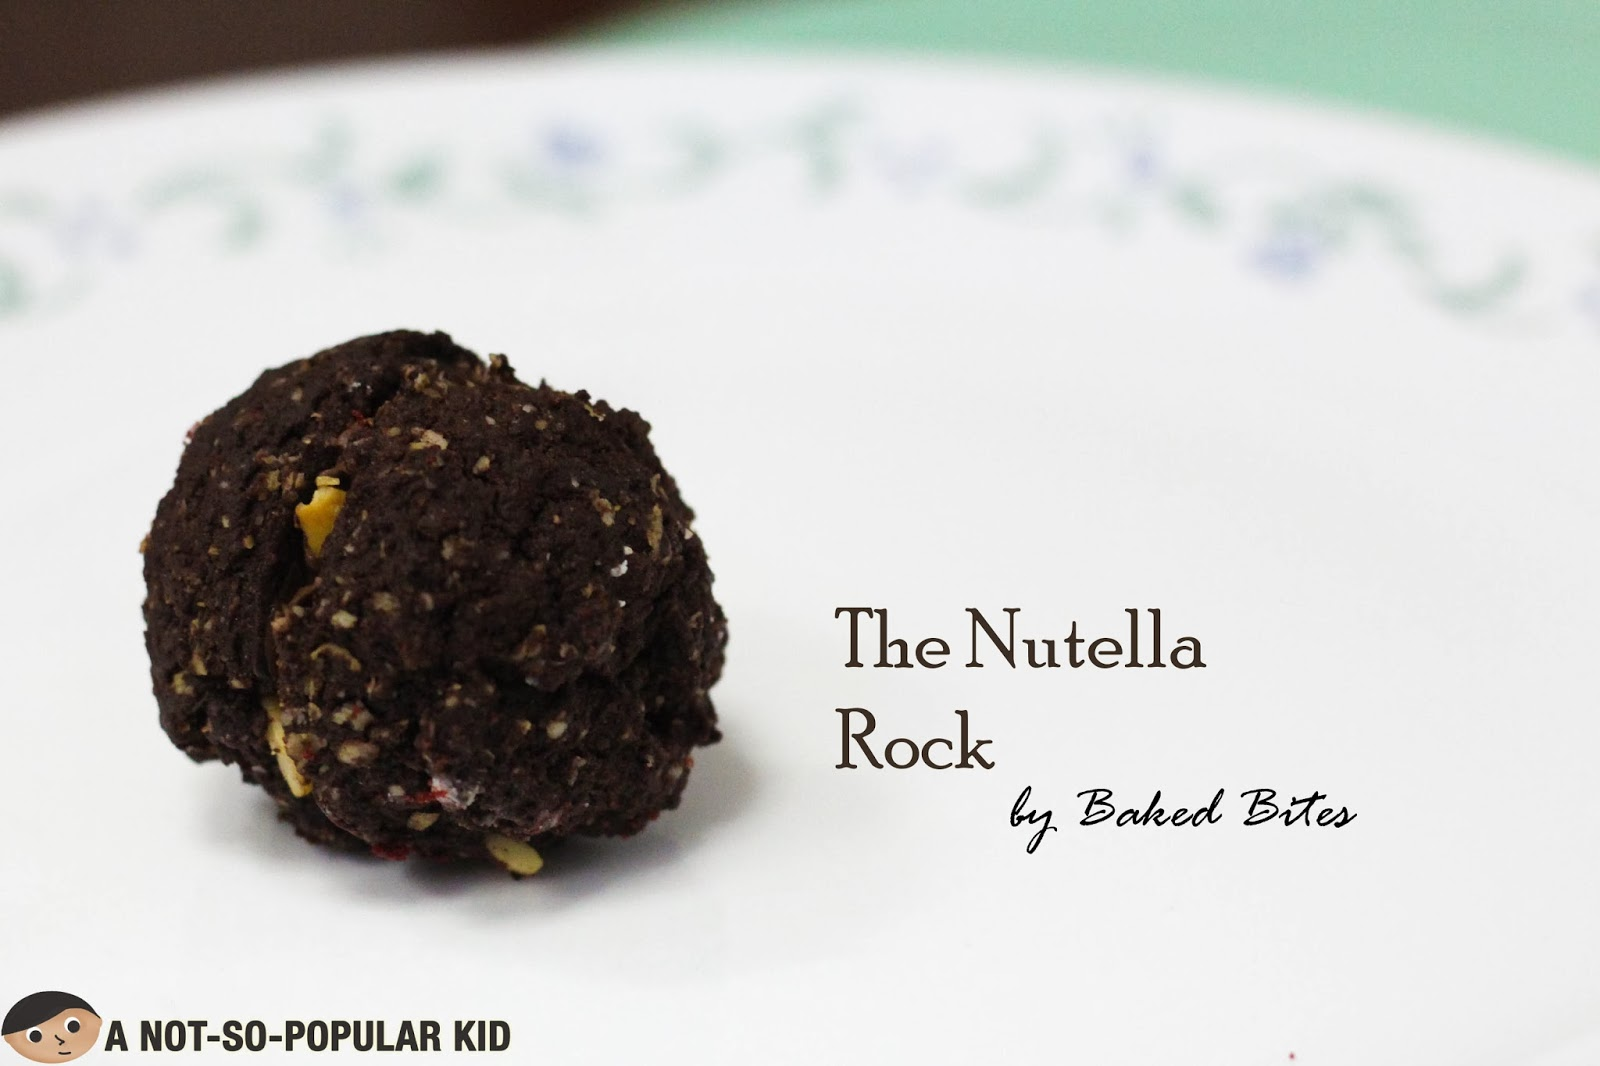 The Nutella Rock by the Baked Bites!